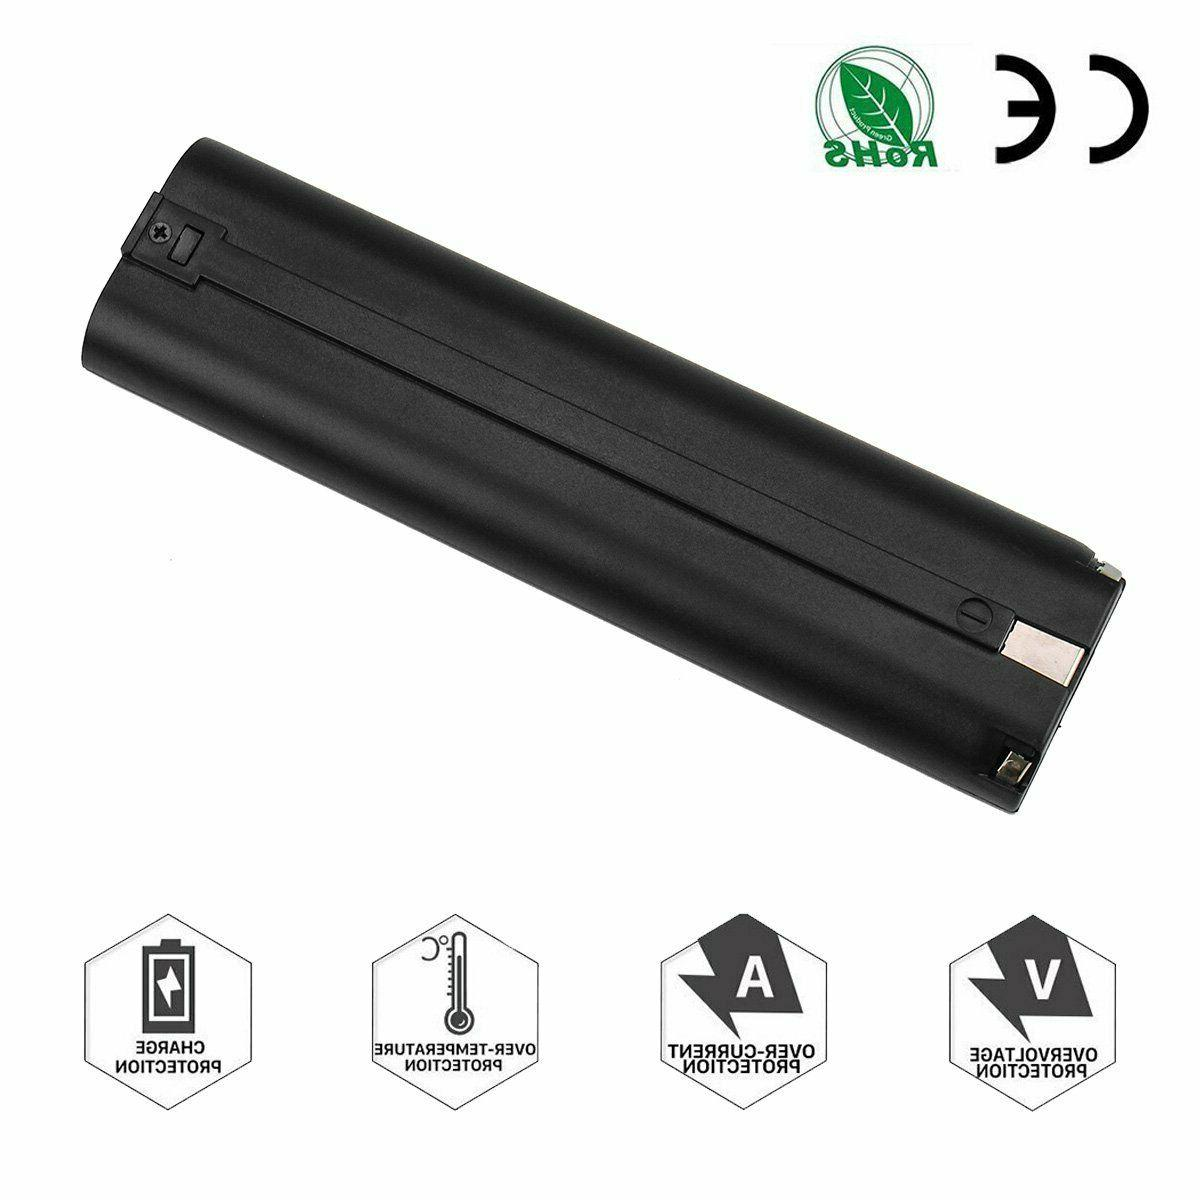 2Pack 3000mAh Replacement Battery For 9000 9600